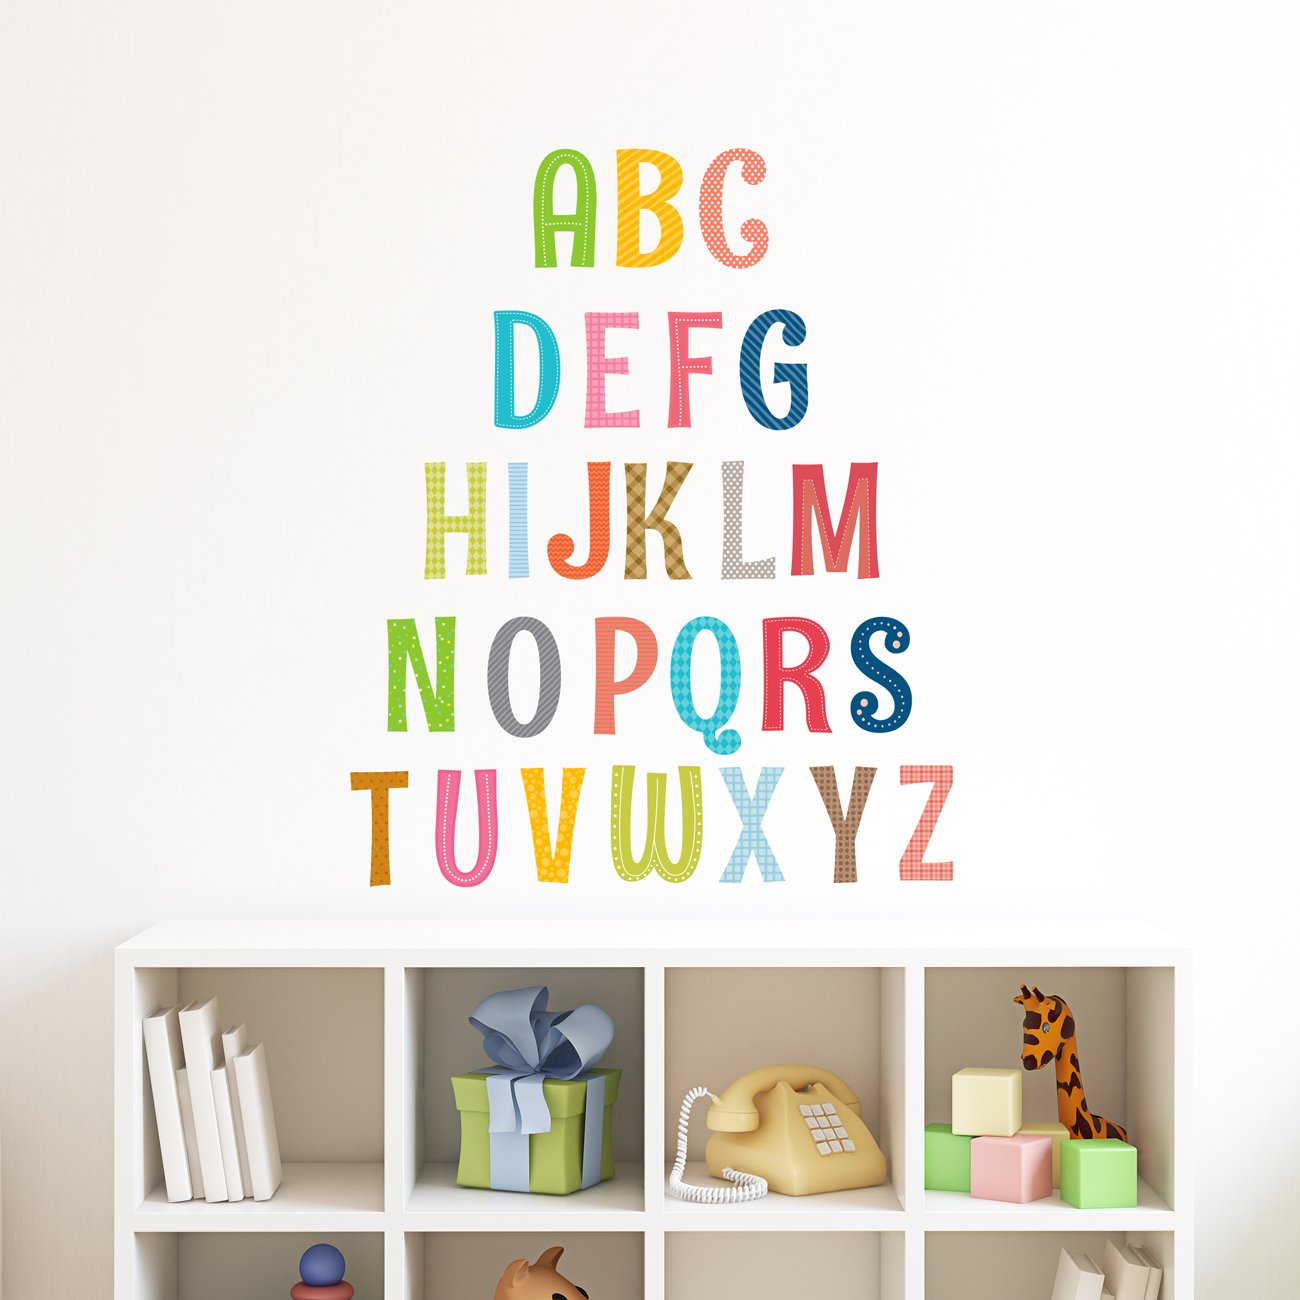 Decowall DS-8023 Alphabet ABC with Pictures Kids Wall Stickers Wall Decals Peel and Stick Removable Wall Stickers for Kids Nursery Bedroom Living Room (Small)